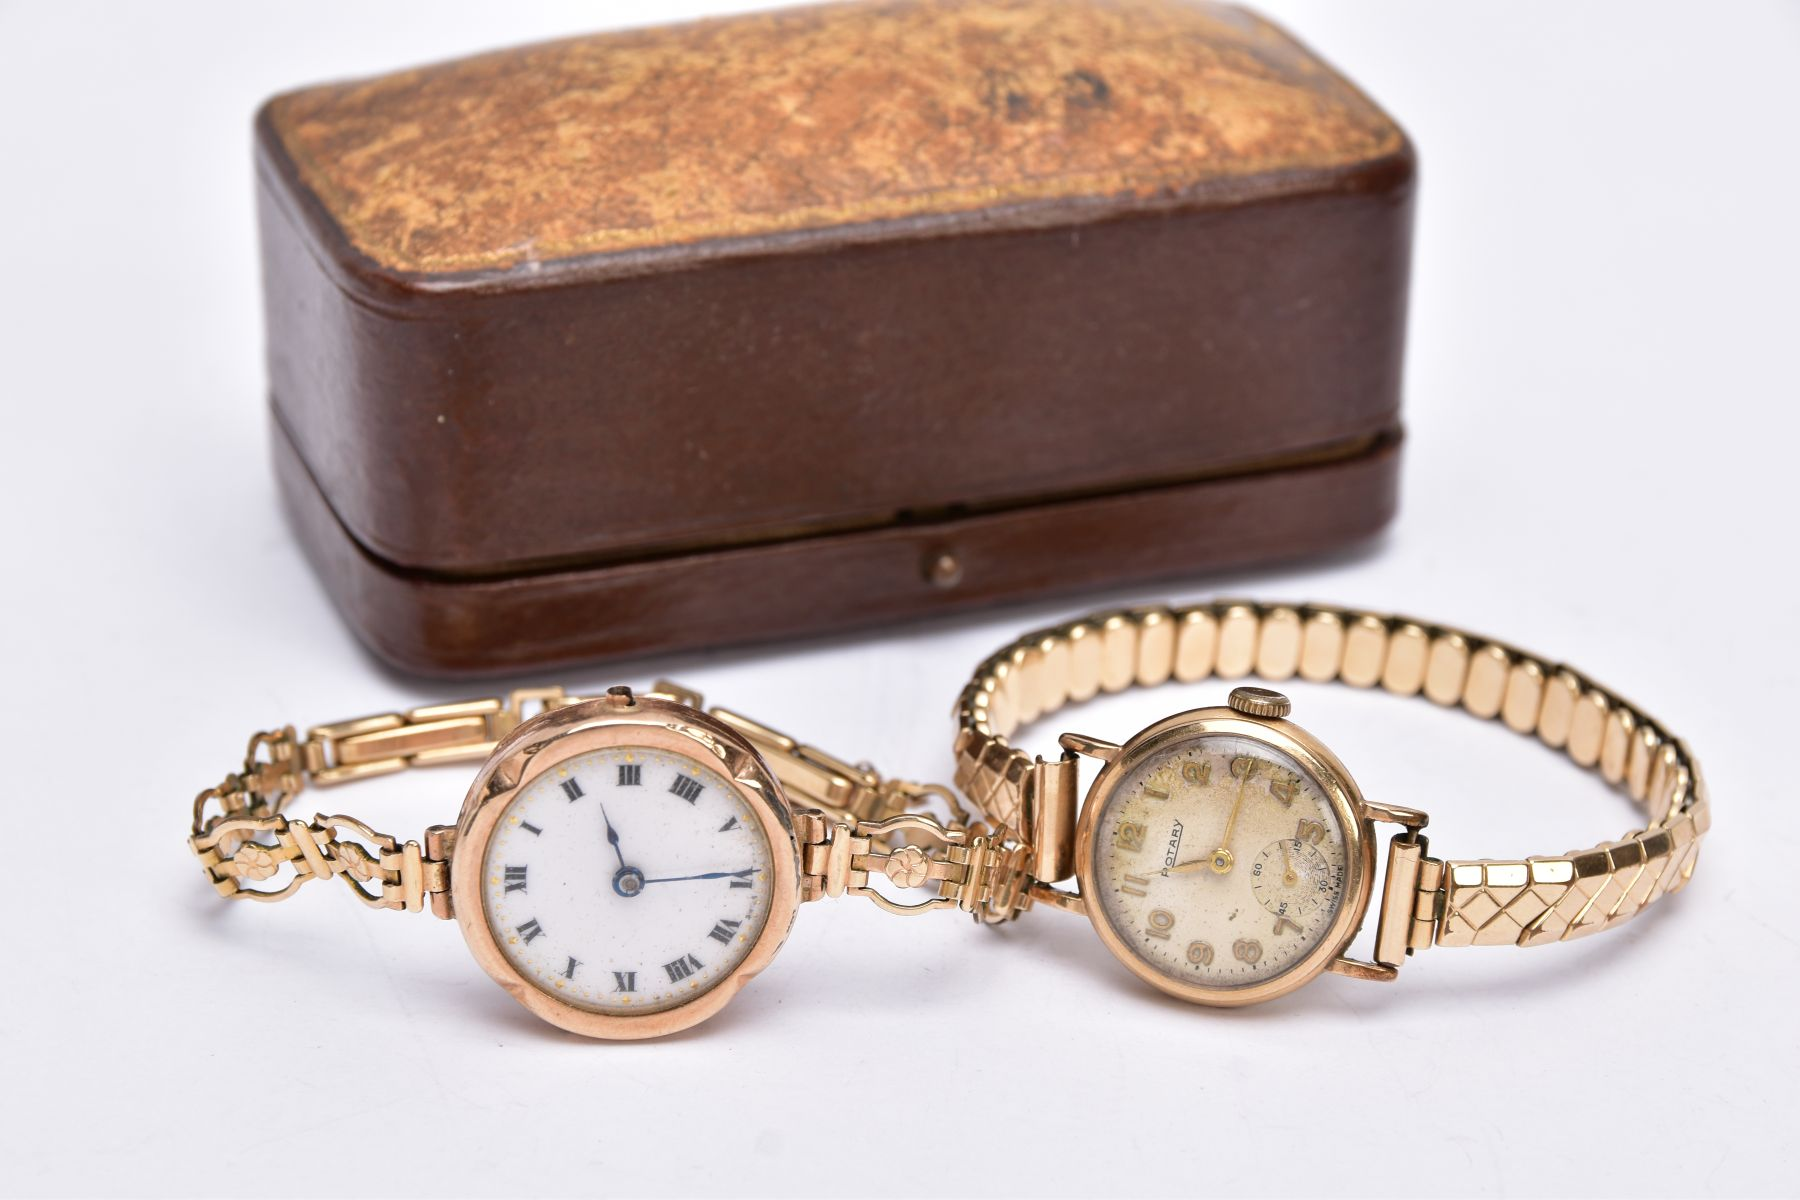 TWO GOLD CASED LADIES WRISTWATCHES, each fitted to gold plated bracelets, an early 20th century